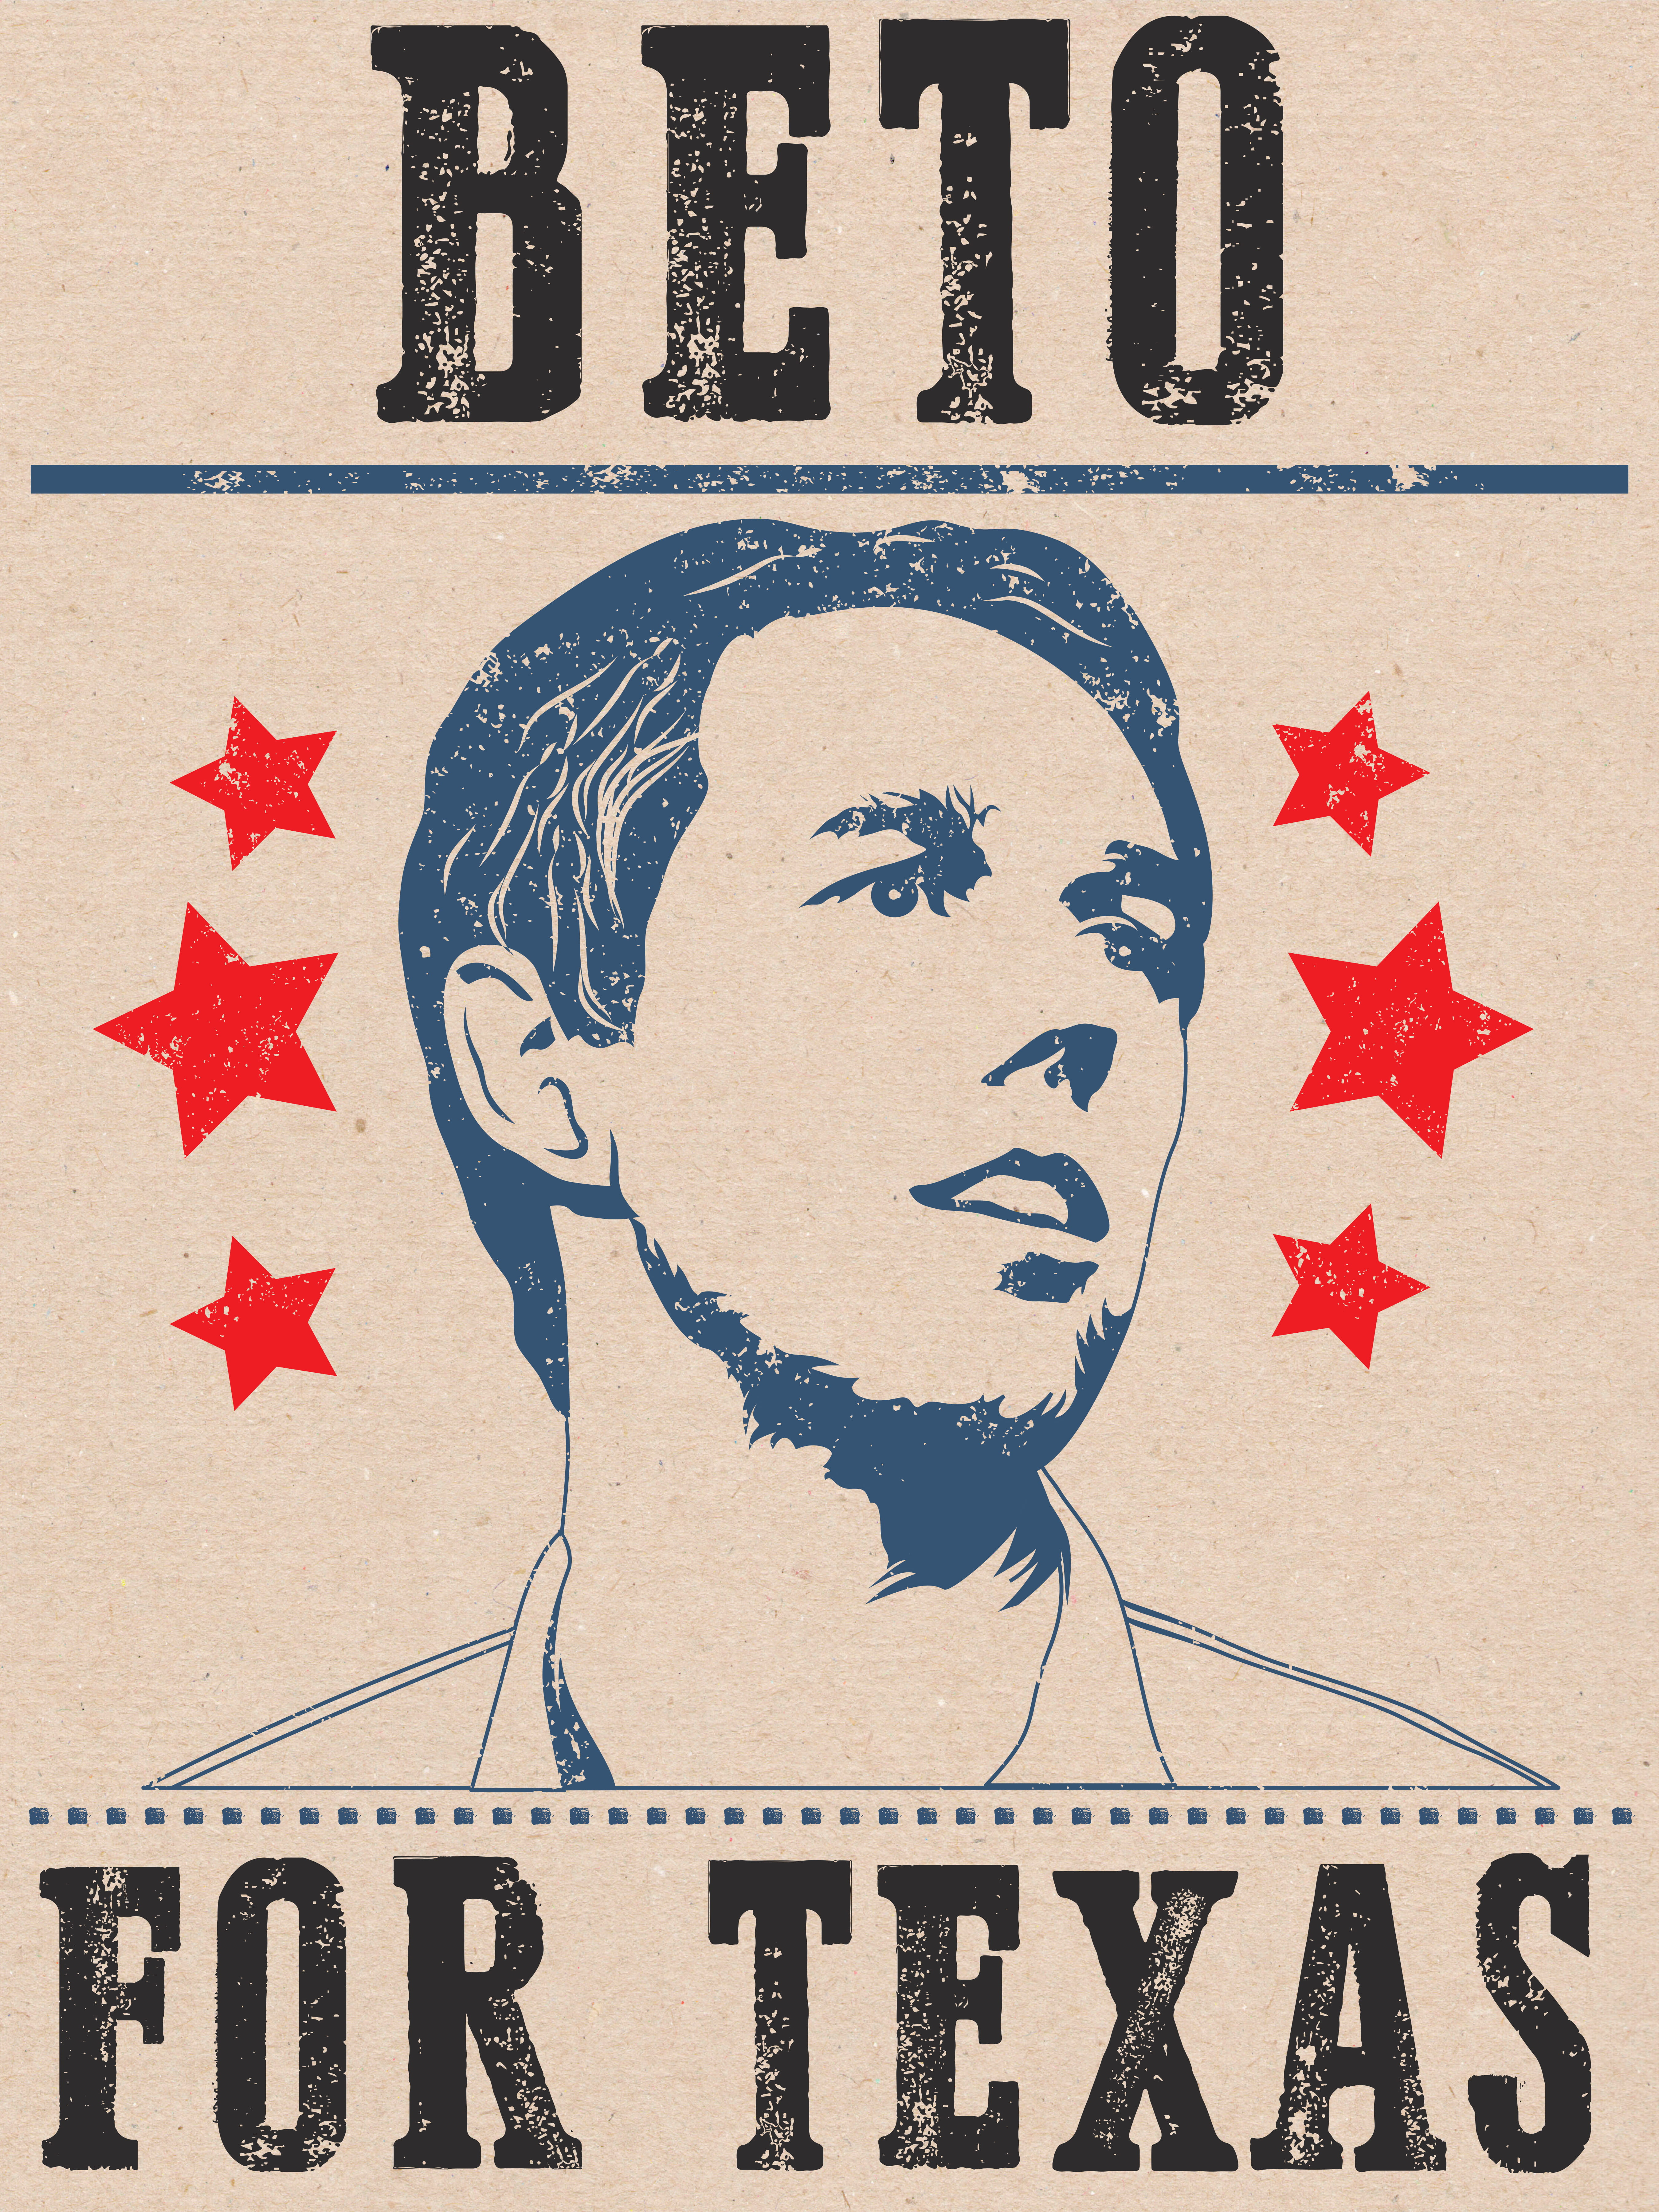 Beto clipart image library library Free The Resistance - Free Download Artworks image library library